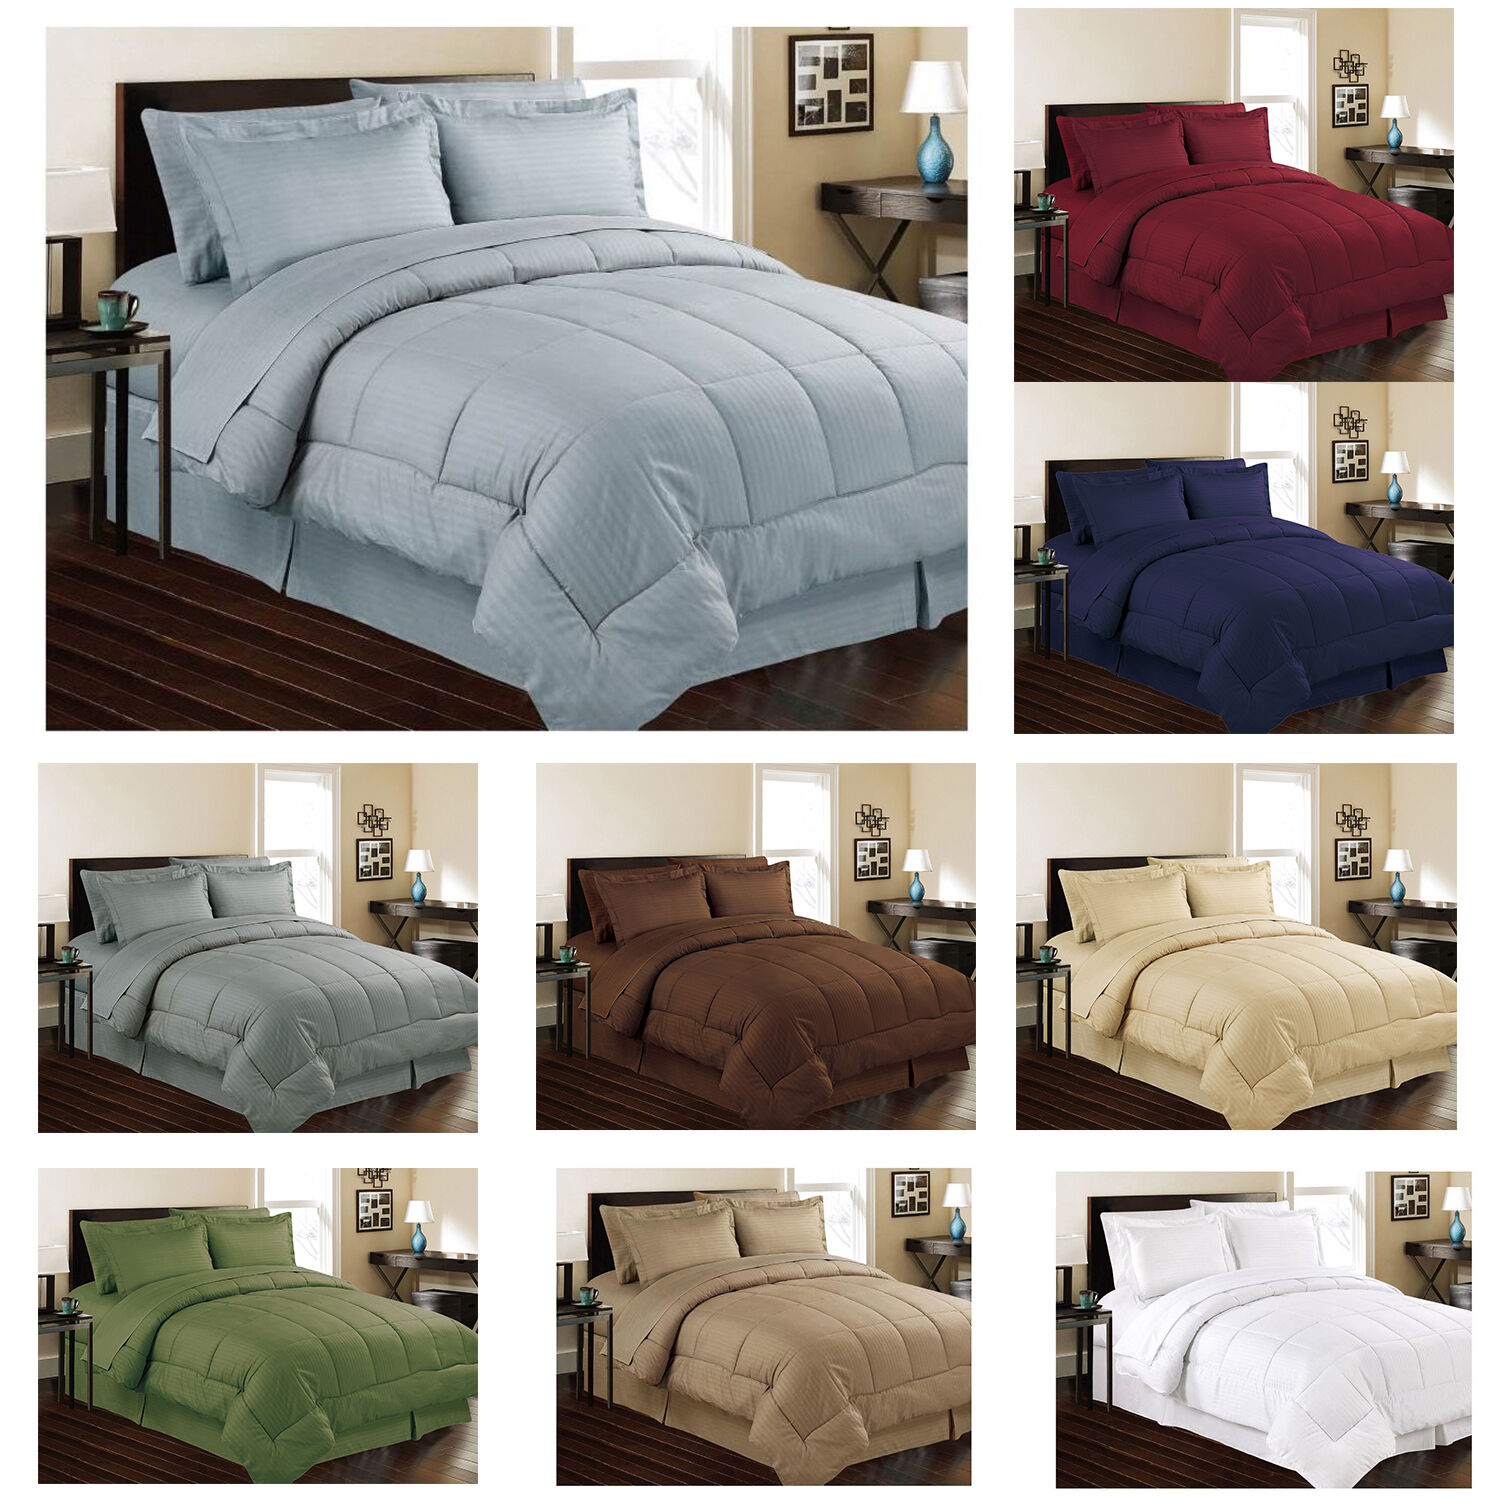 Soft Embossed Dobby Stripe 8pc Bed In Bag Comforter Sheet